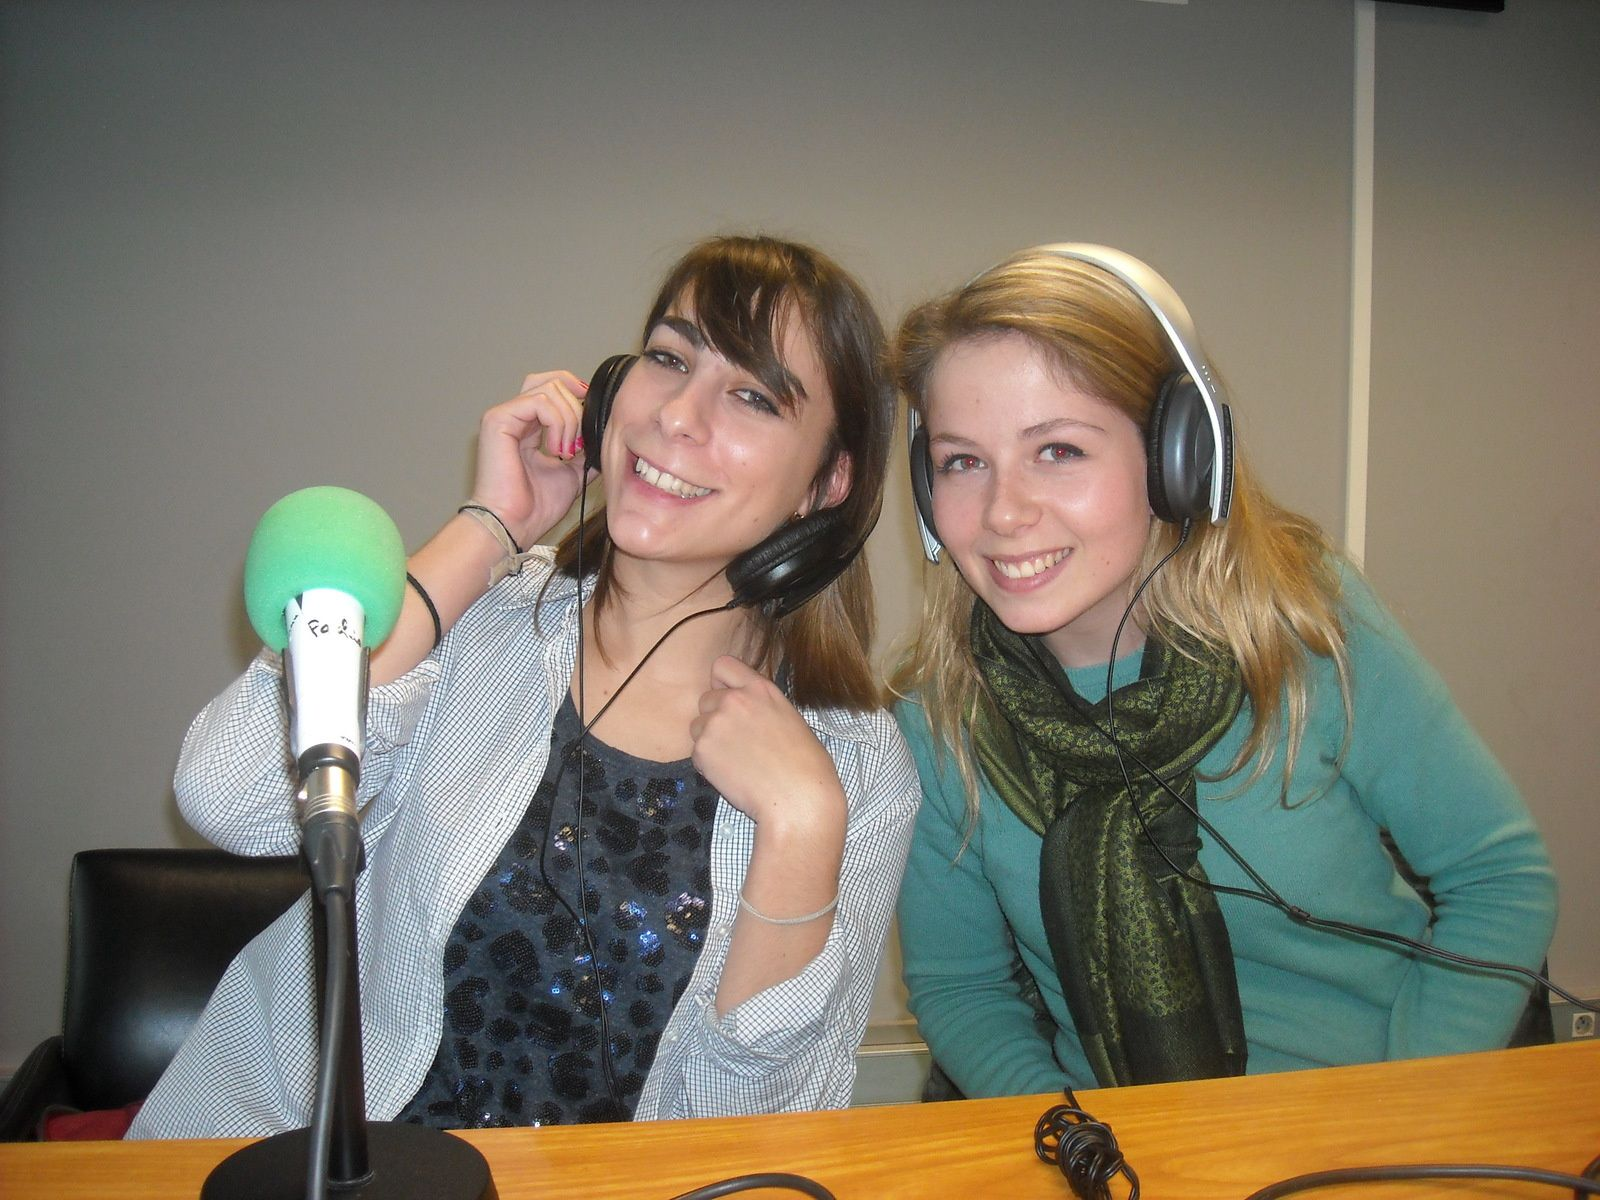 Perrine Ruivard et Lucie Joly, coachs des Pompom Girls de Bordeaux Sciences Agro.